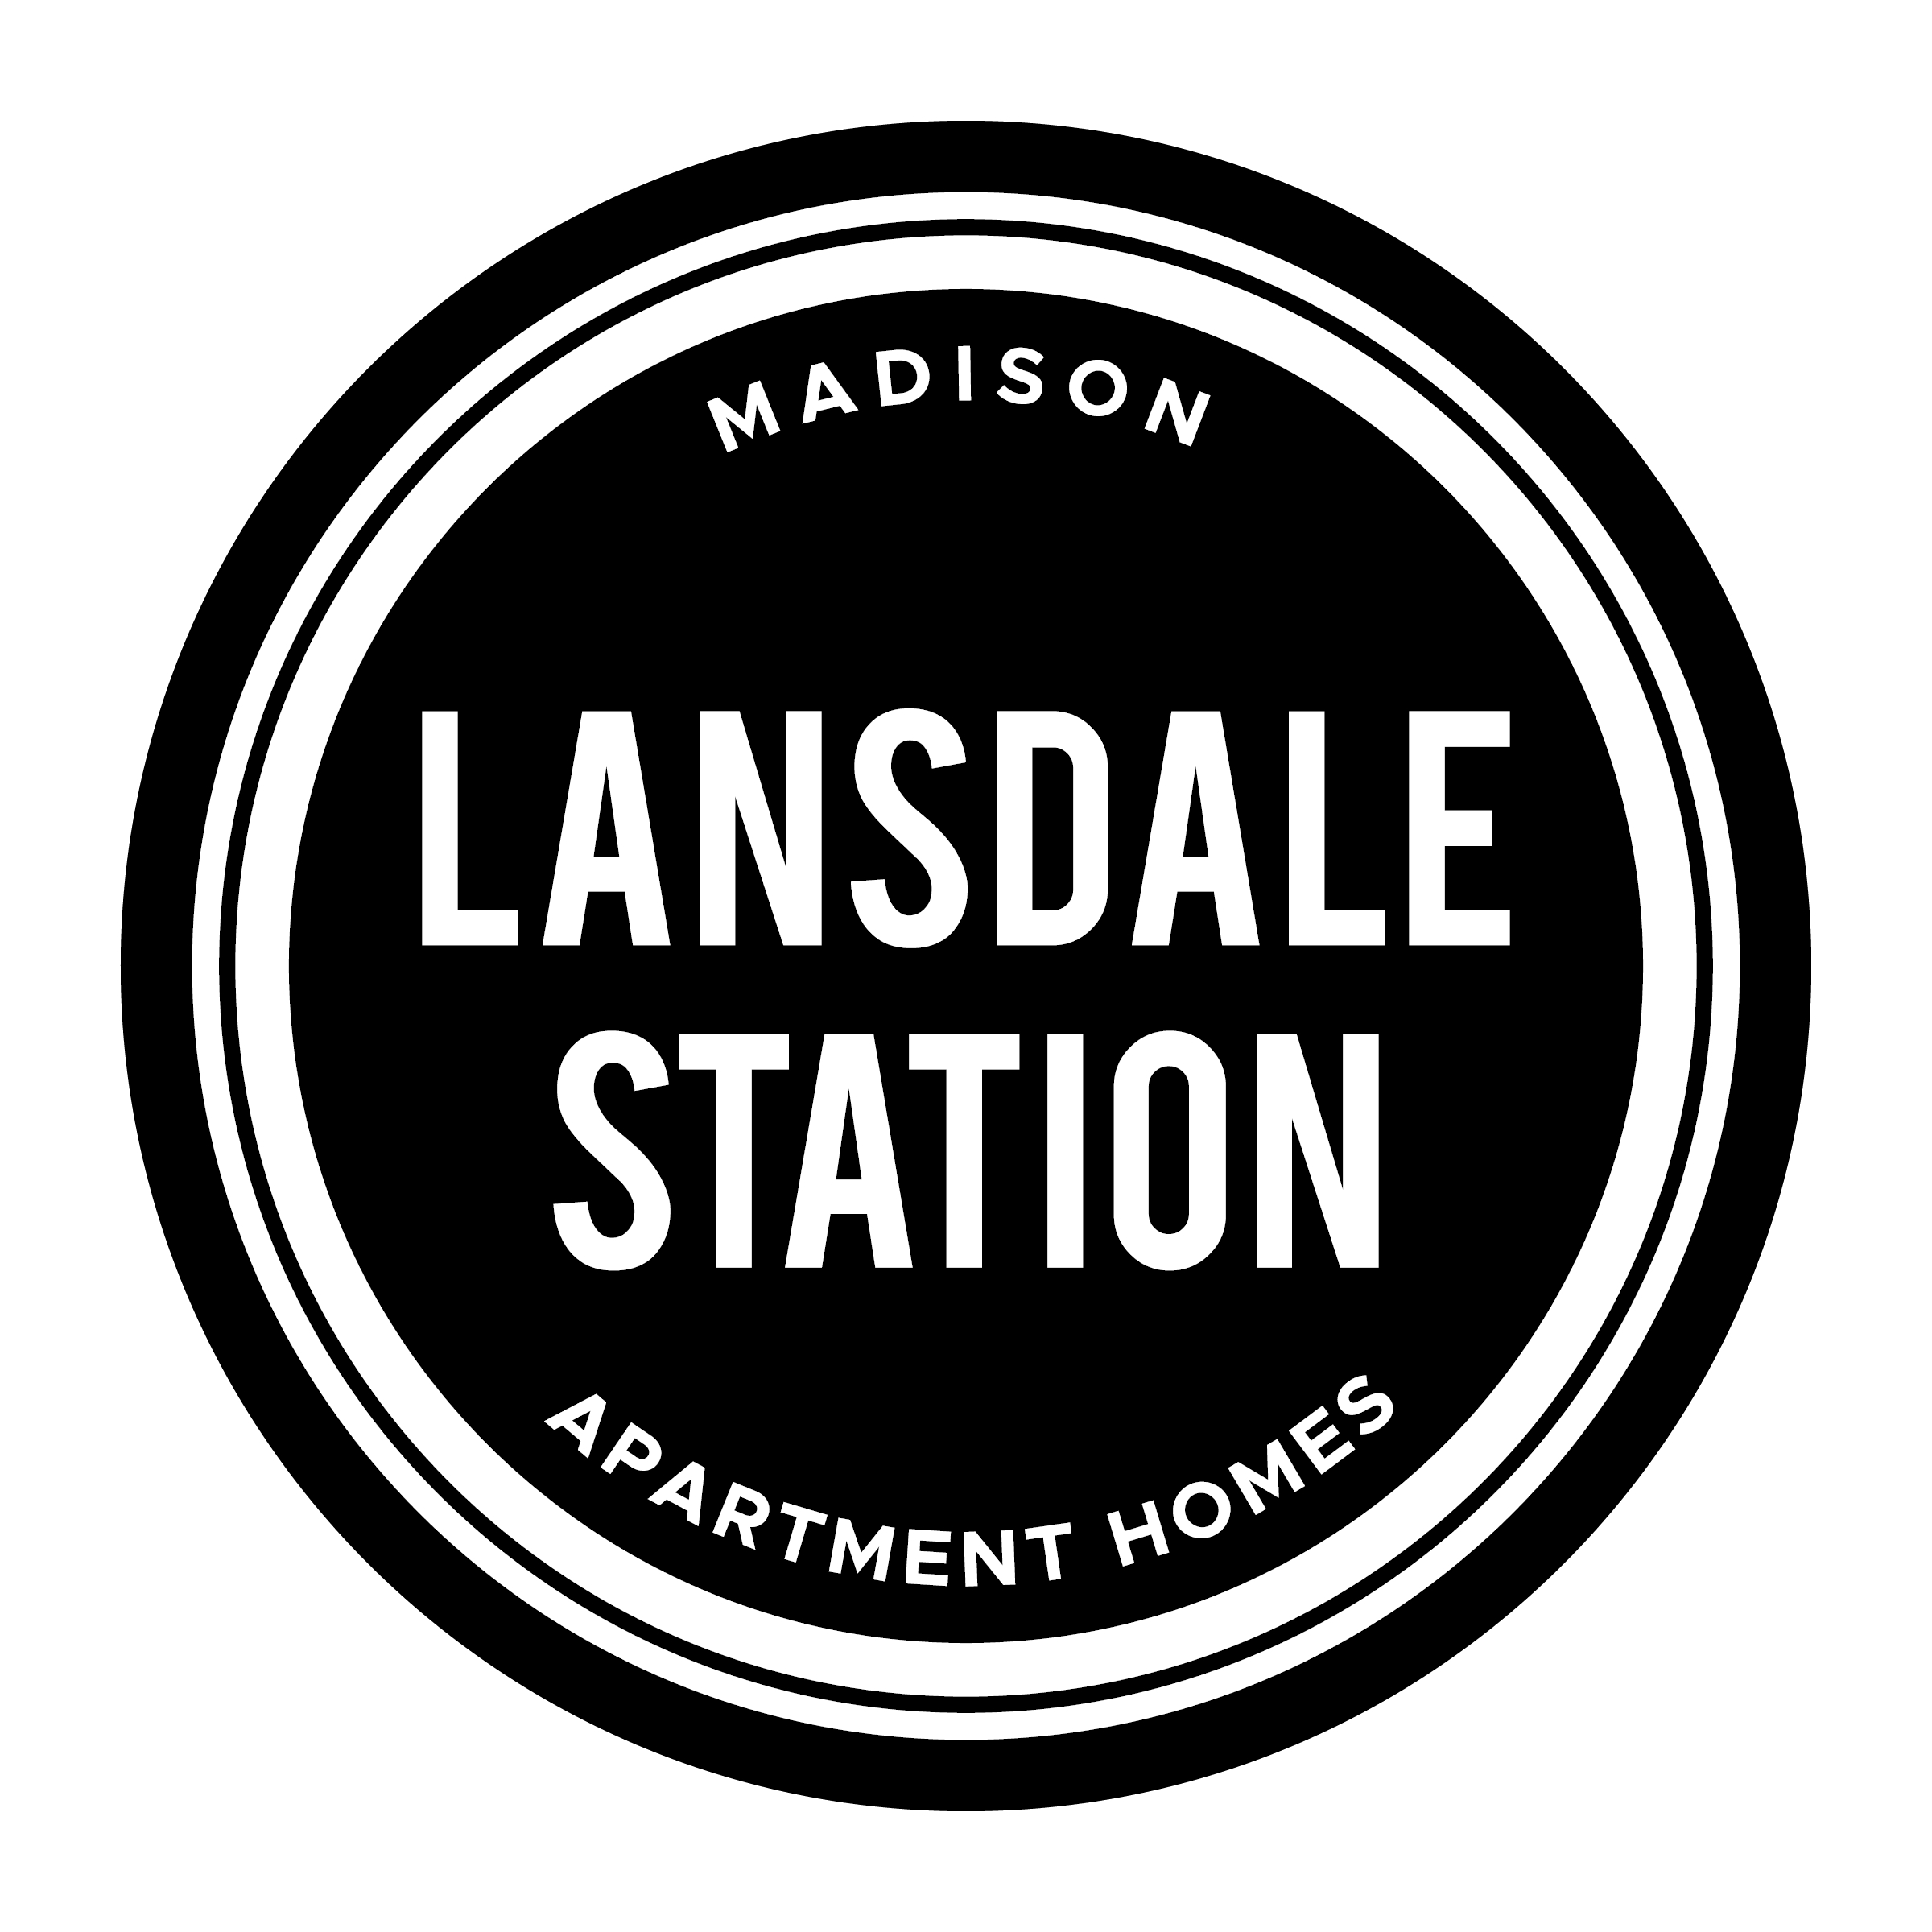 Madison Lansdale Station